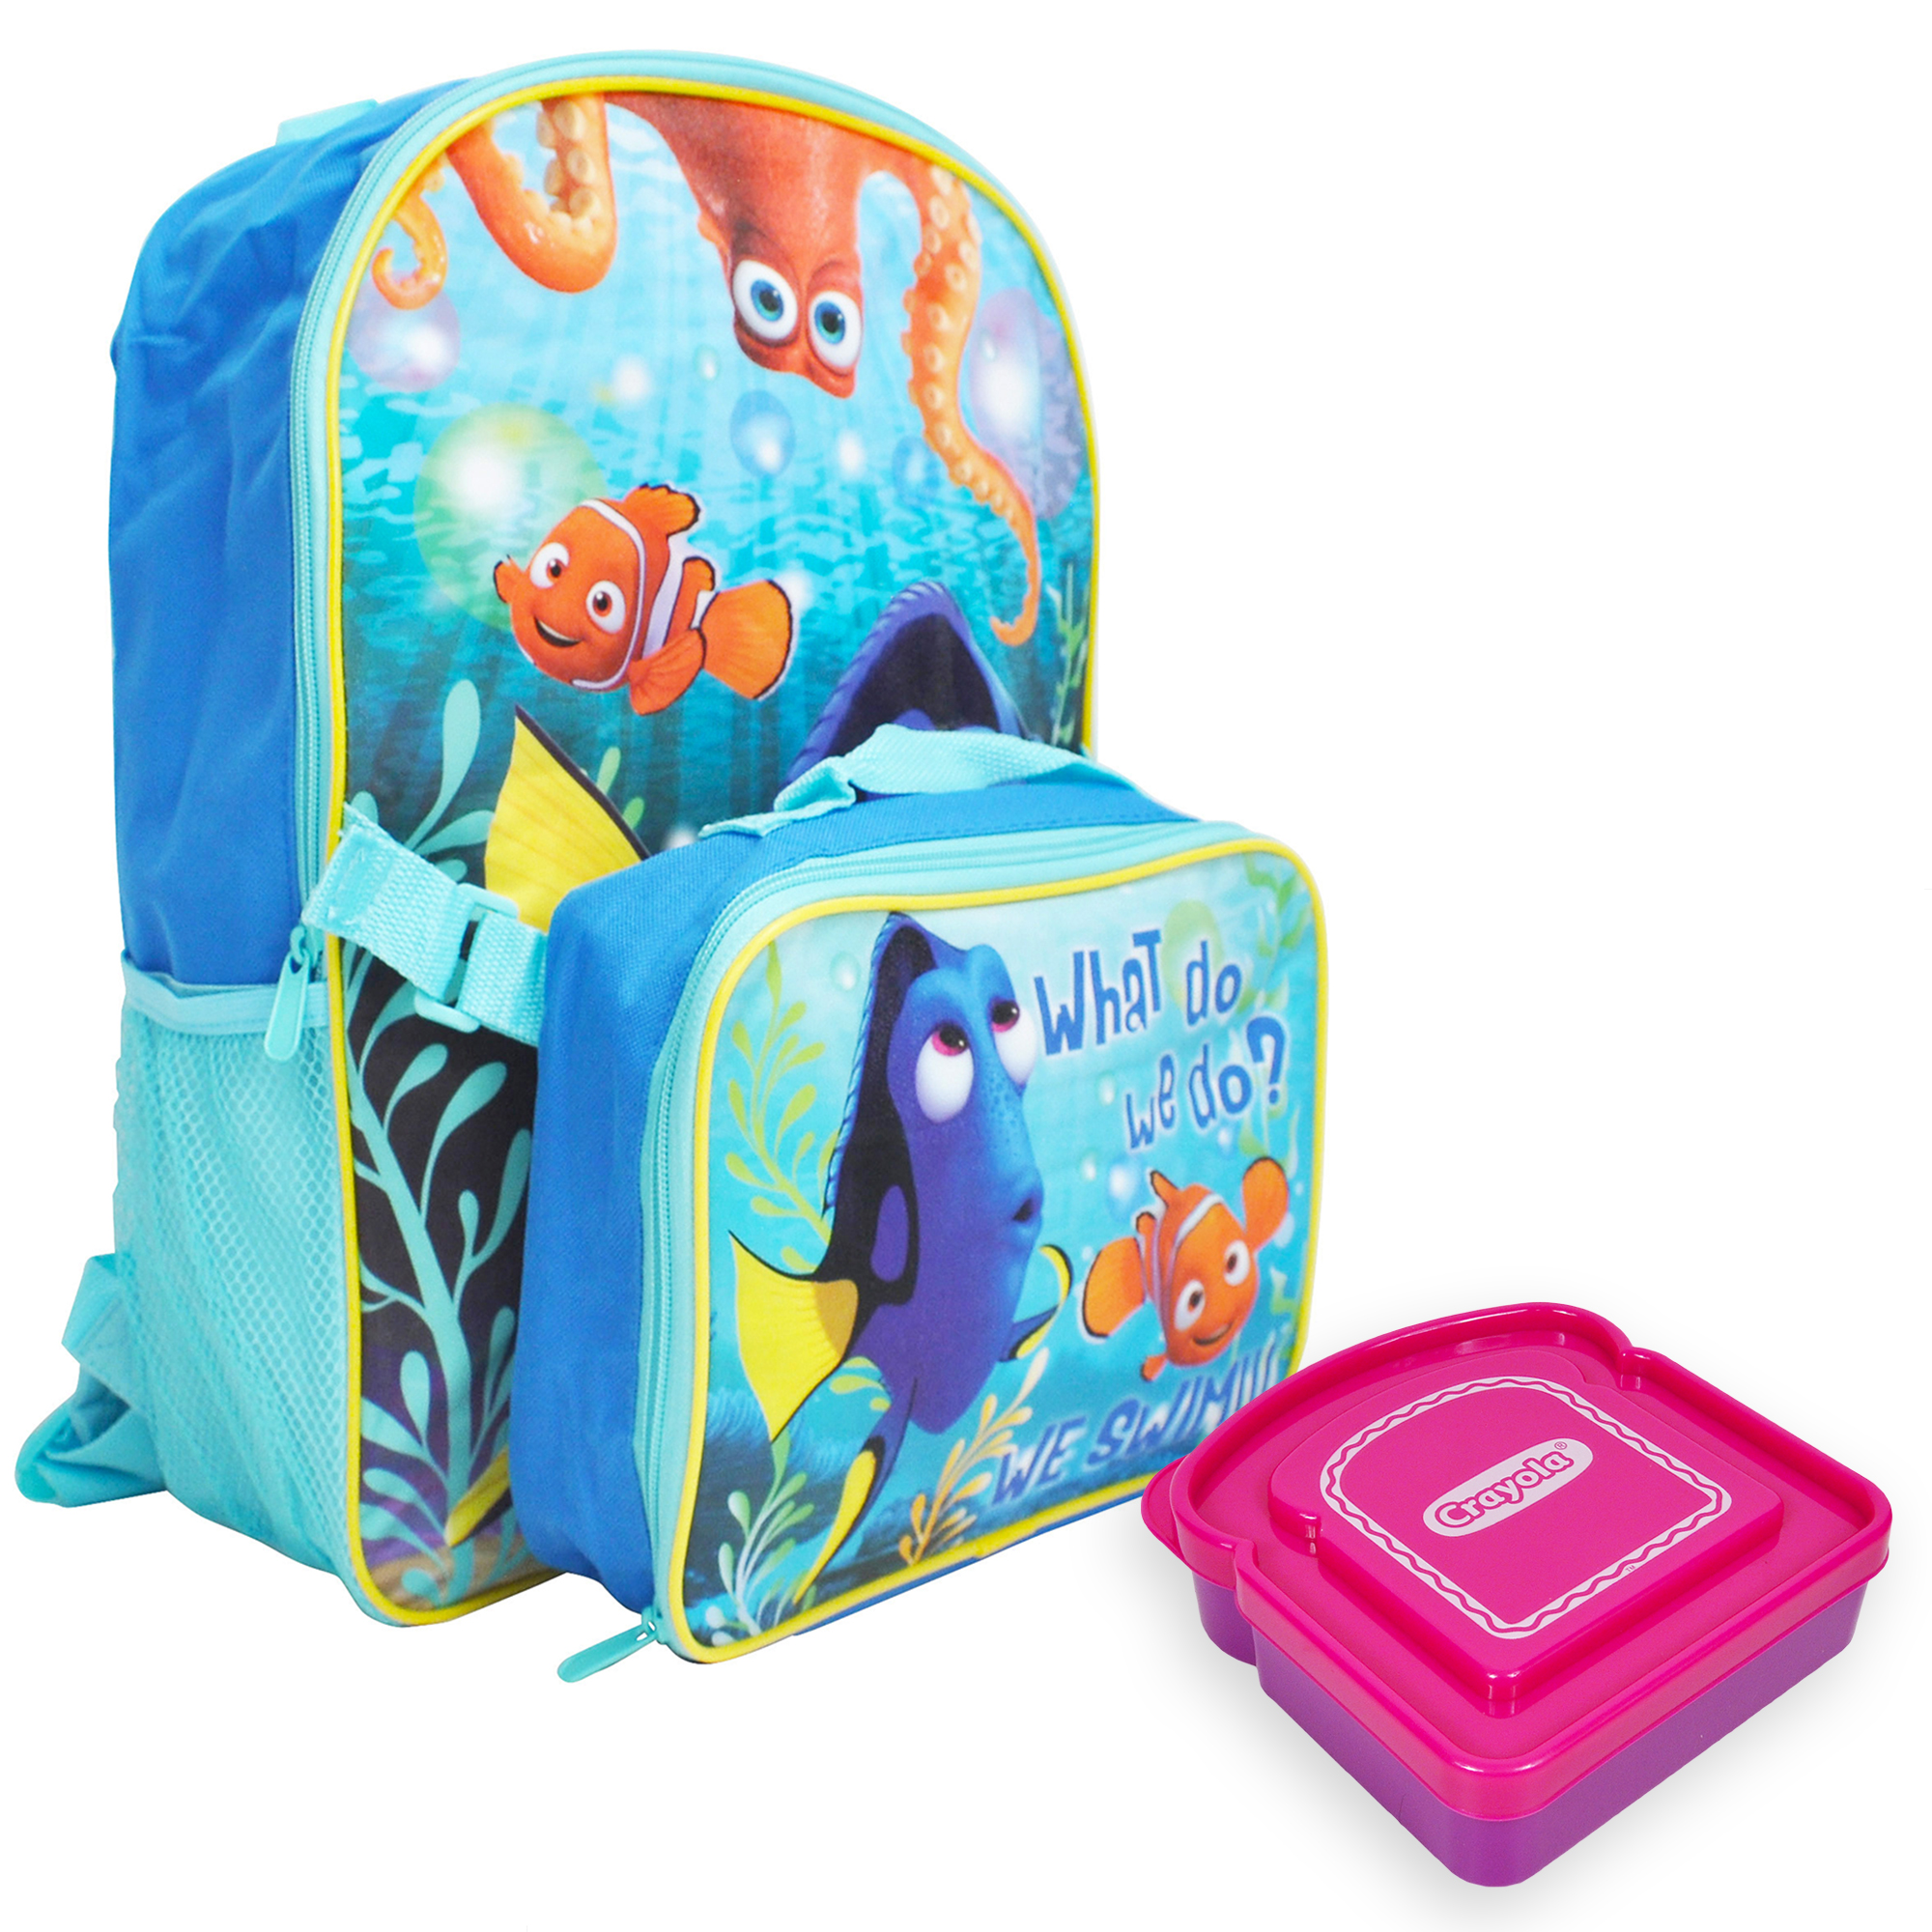 Brotdosen Aufbewahrung Mobel Wohnen Padded Handle Shoulder Strap Finding Dora Disney Lunch Bag With Zipper Mc Mgmt Com